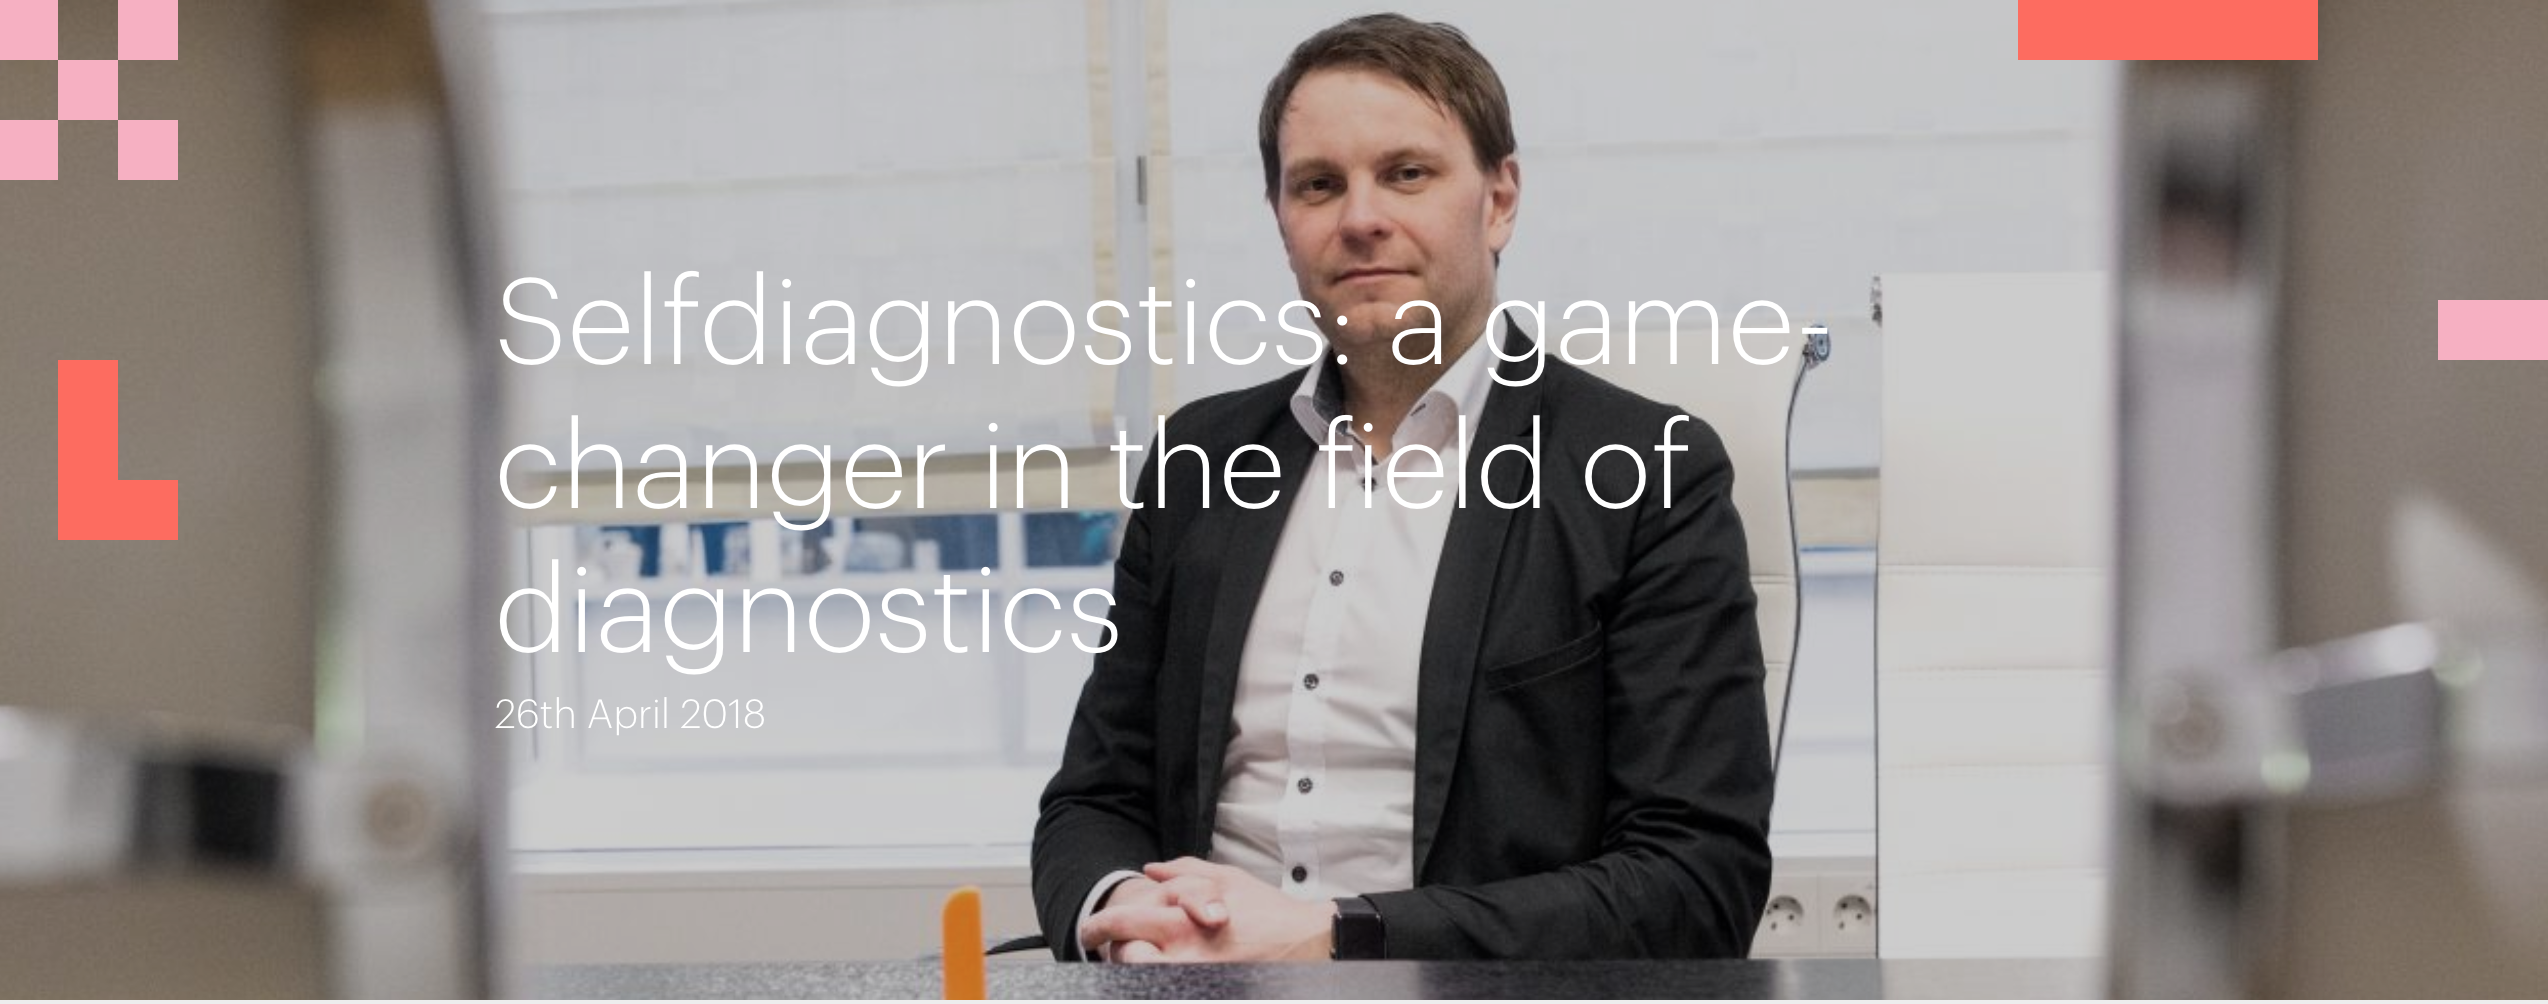 Selfdiagnostics: a game-changer in the field of diagnostics